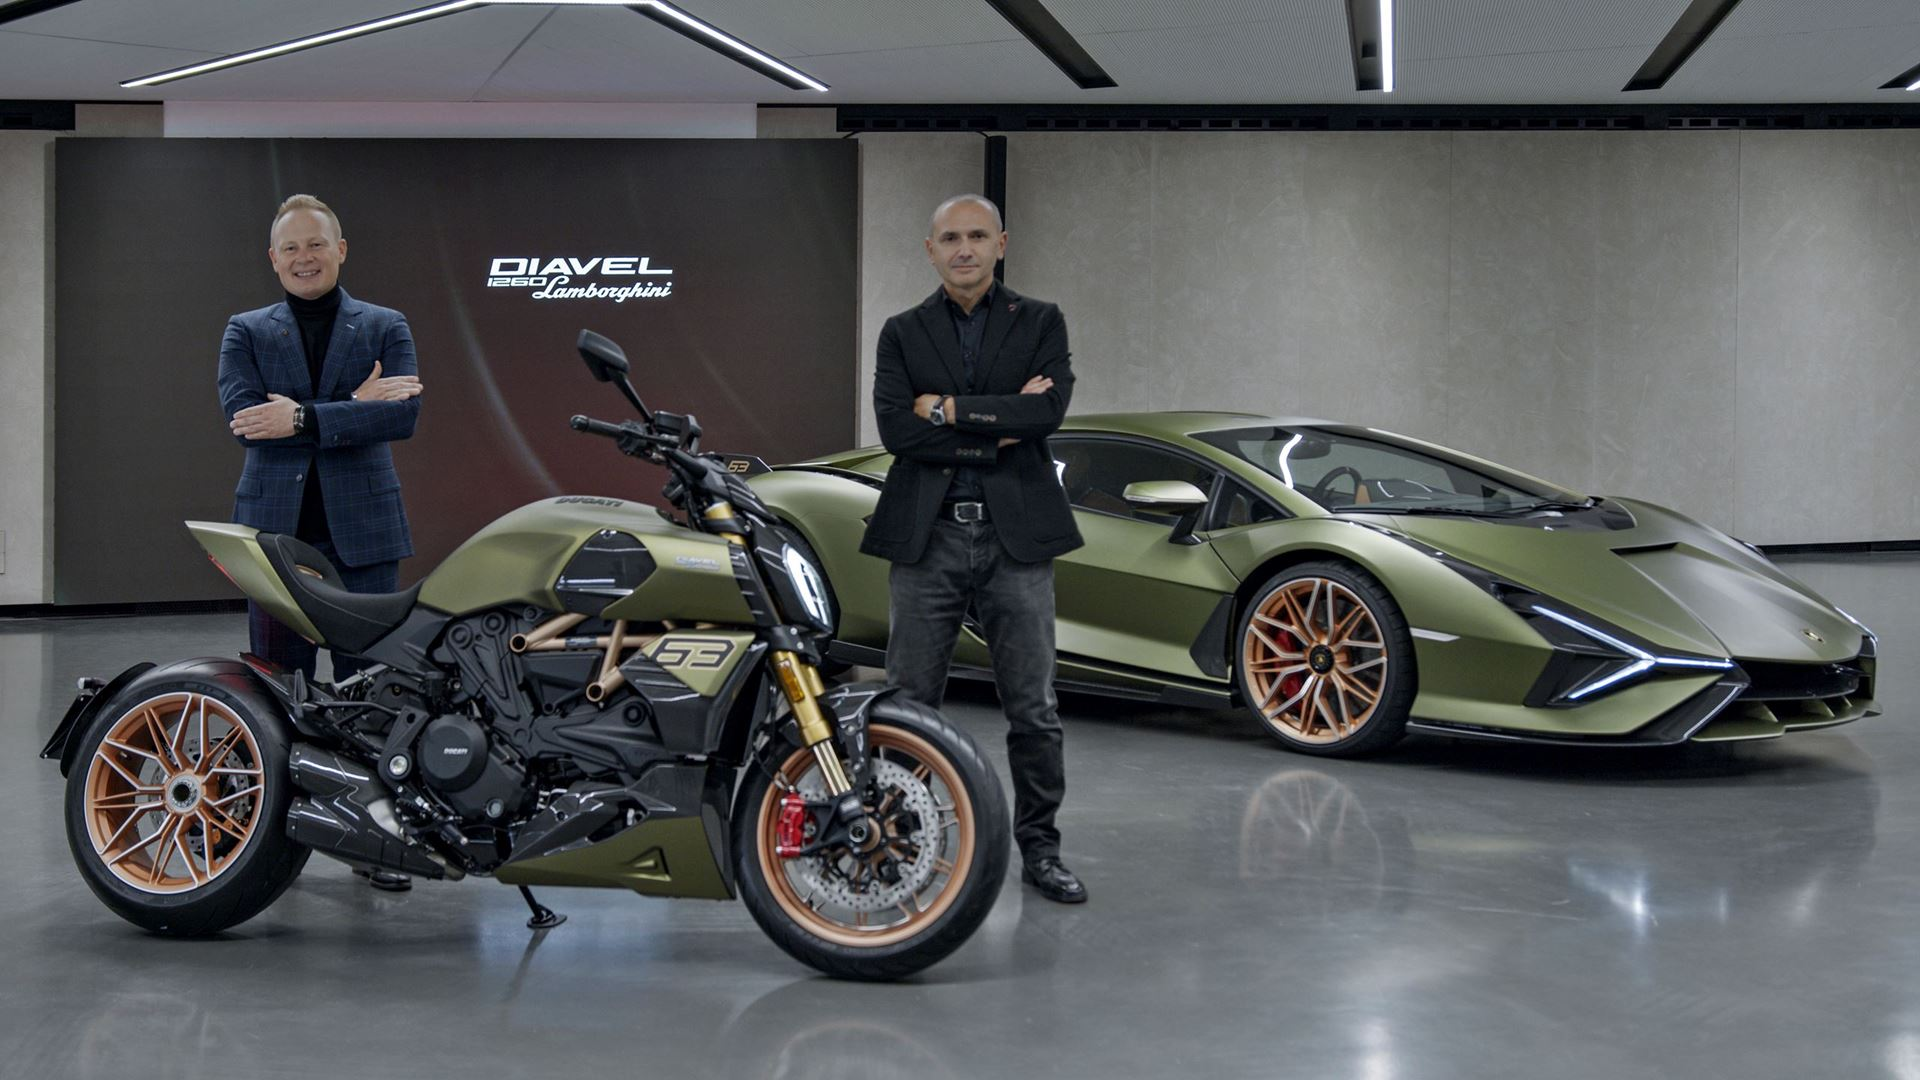 A unique project is born: Ducati Diavel 1260 Lamborghini, inspired by the Sián FKP 37 - Image 5